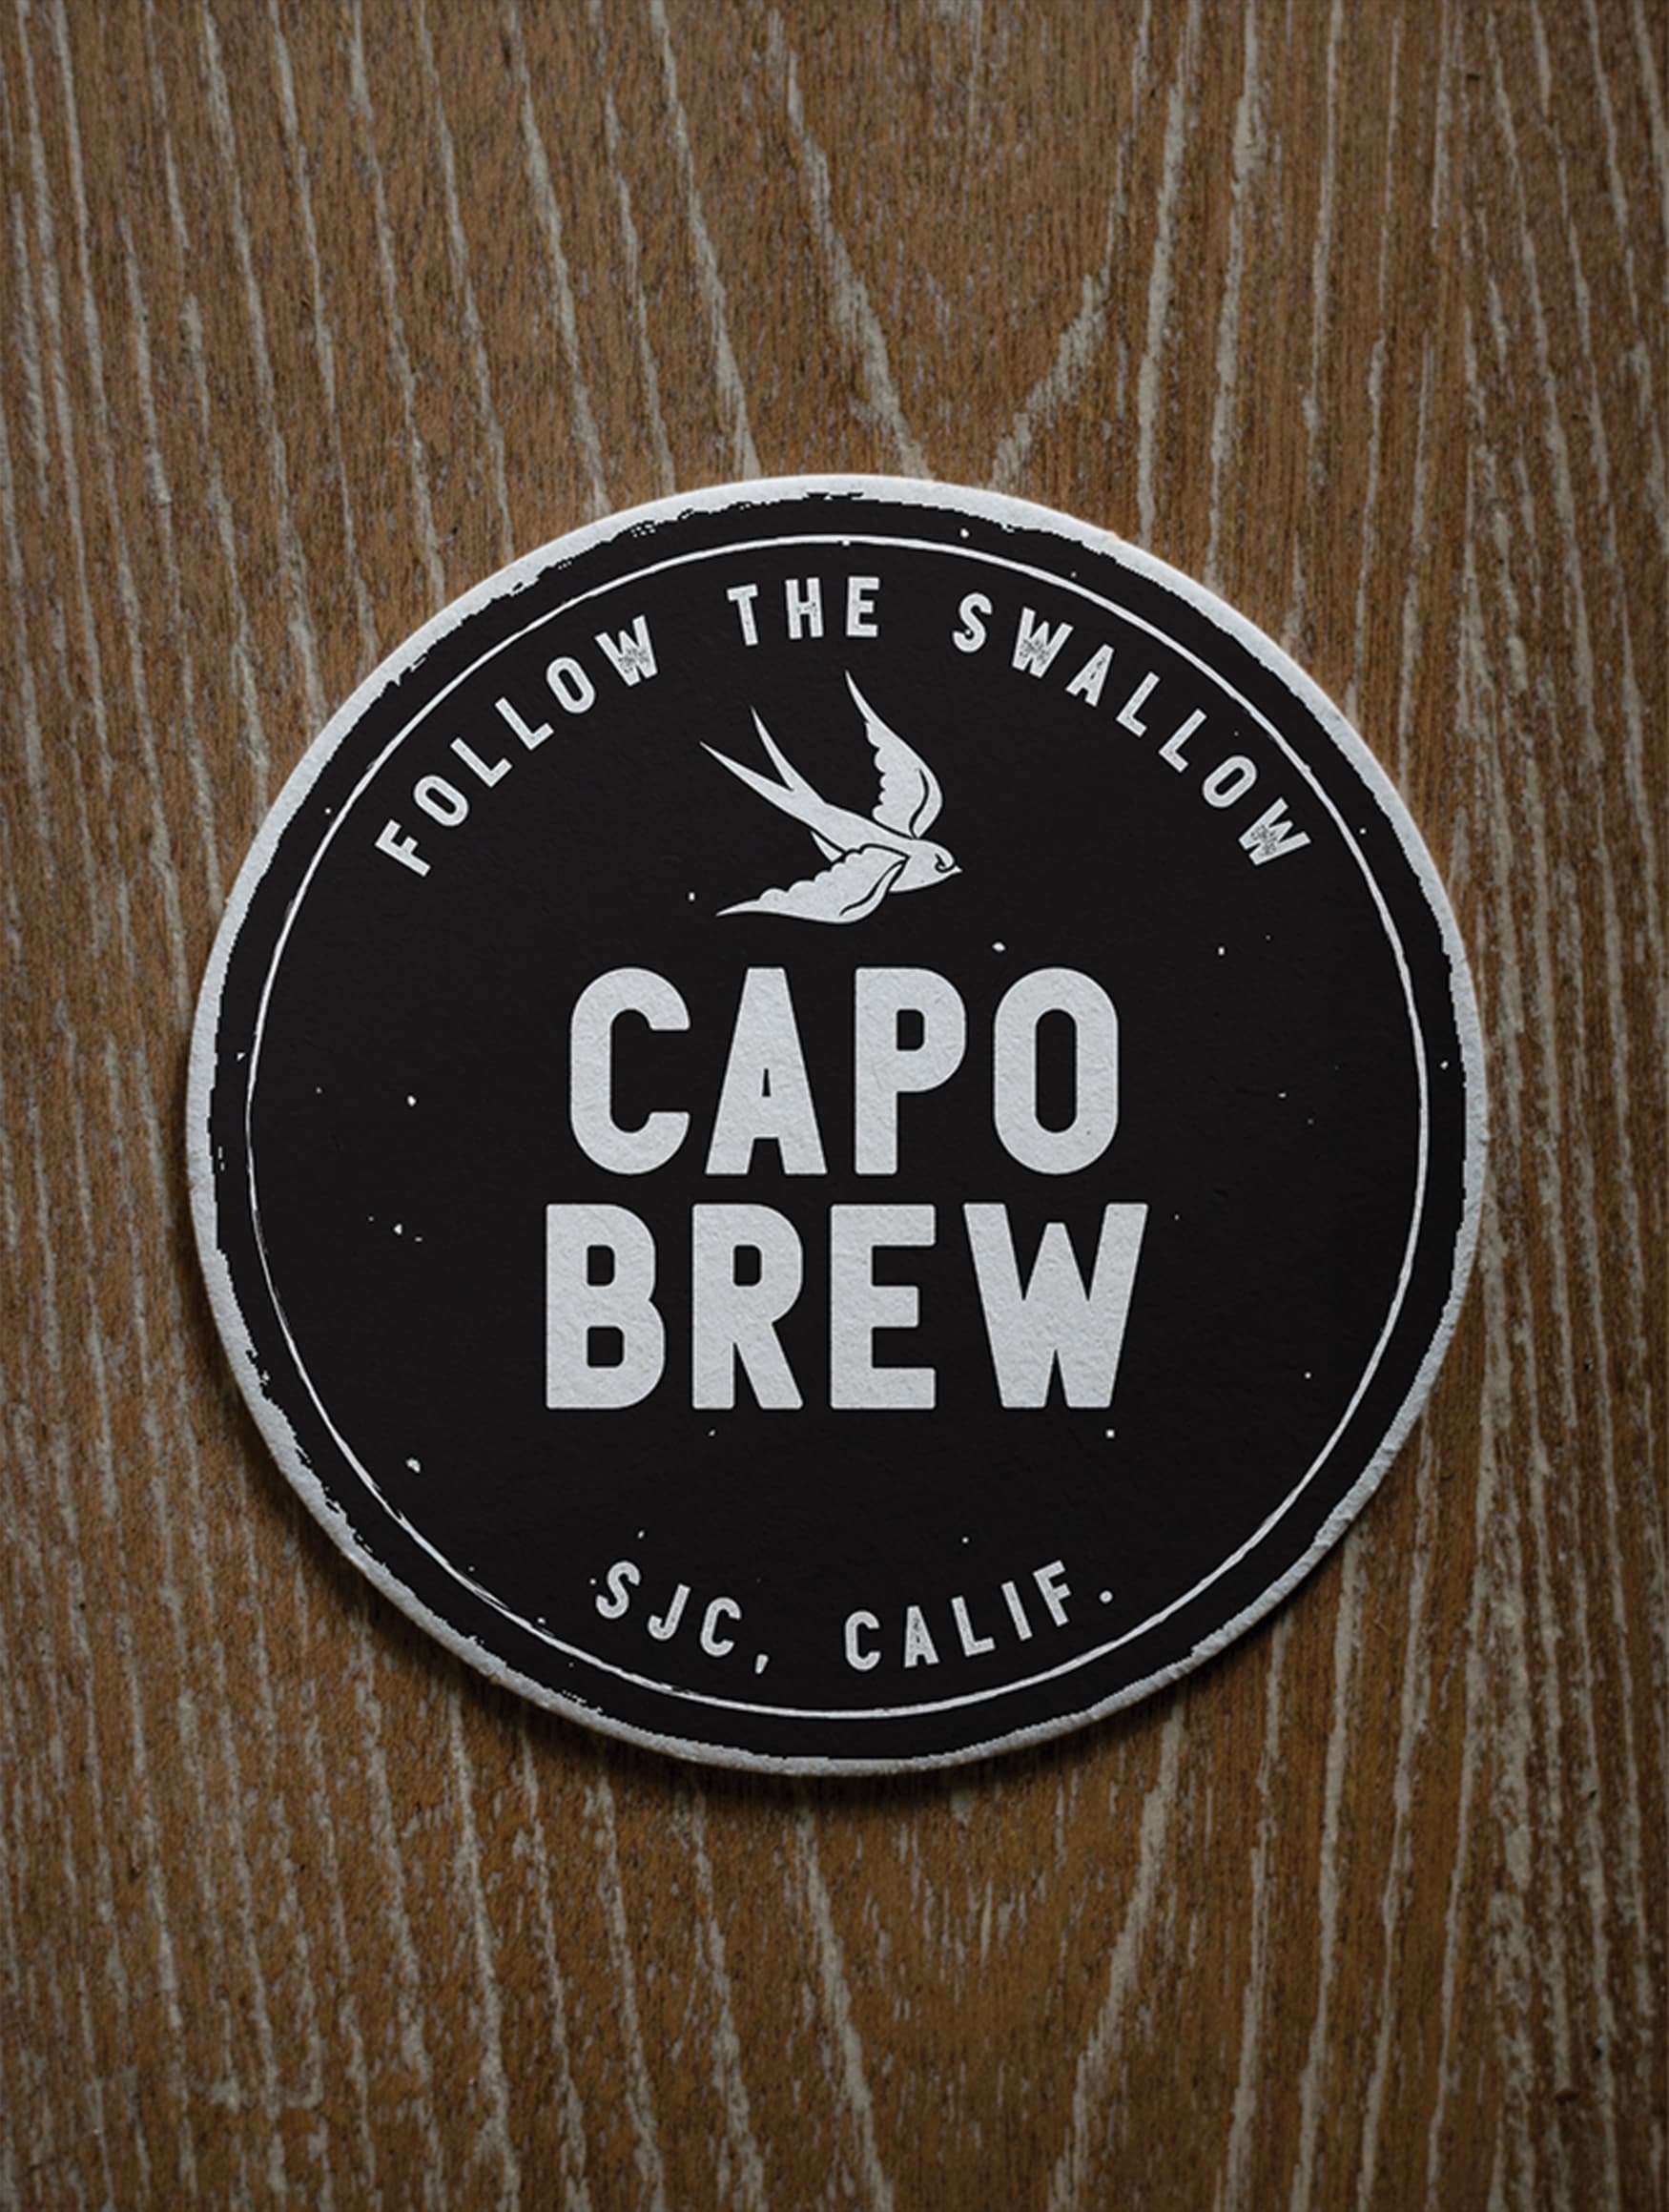 Capo Brew, a brewery located in the historic San Juan Capistrano, California, worked with RSM Design to craft a brand identity that conveyed its historic roots and cowboy personality. Branded coaster.